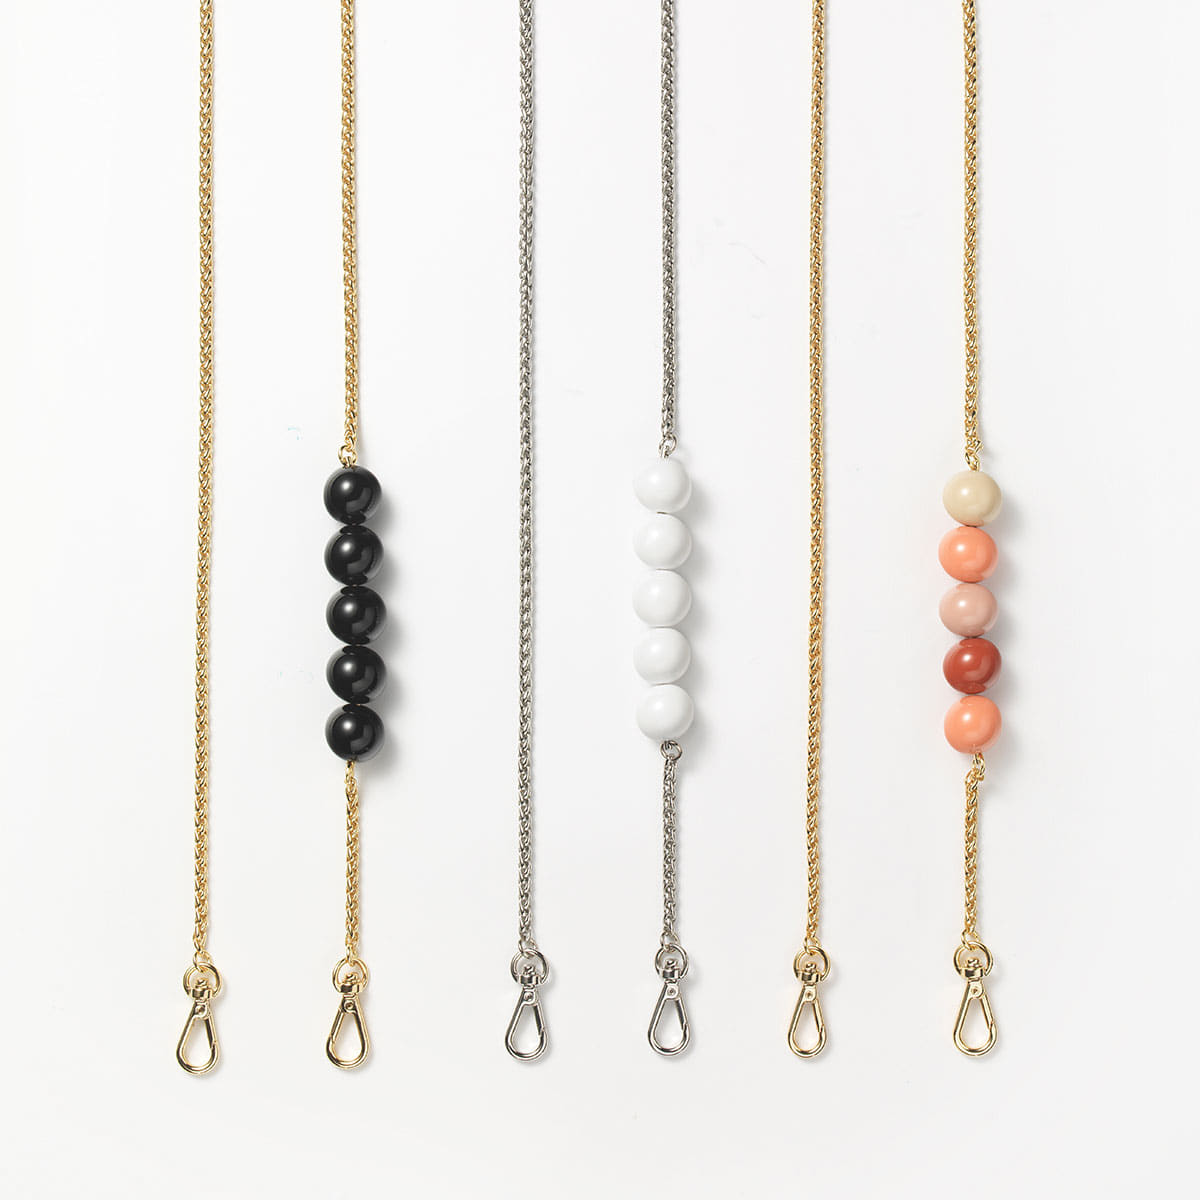 Beads Chain (All colors)